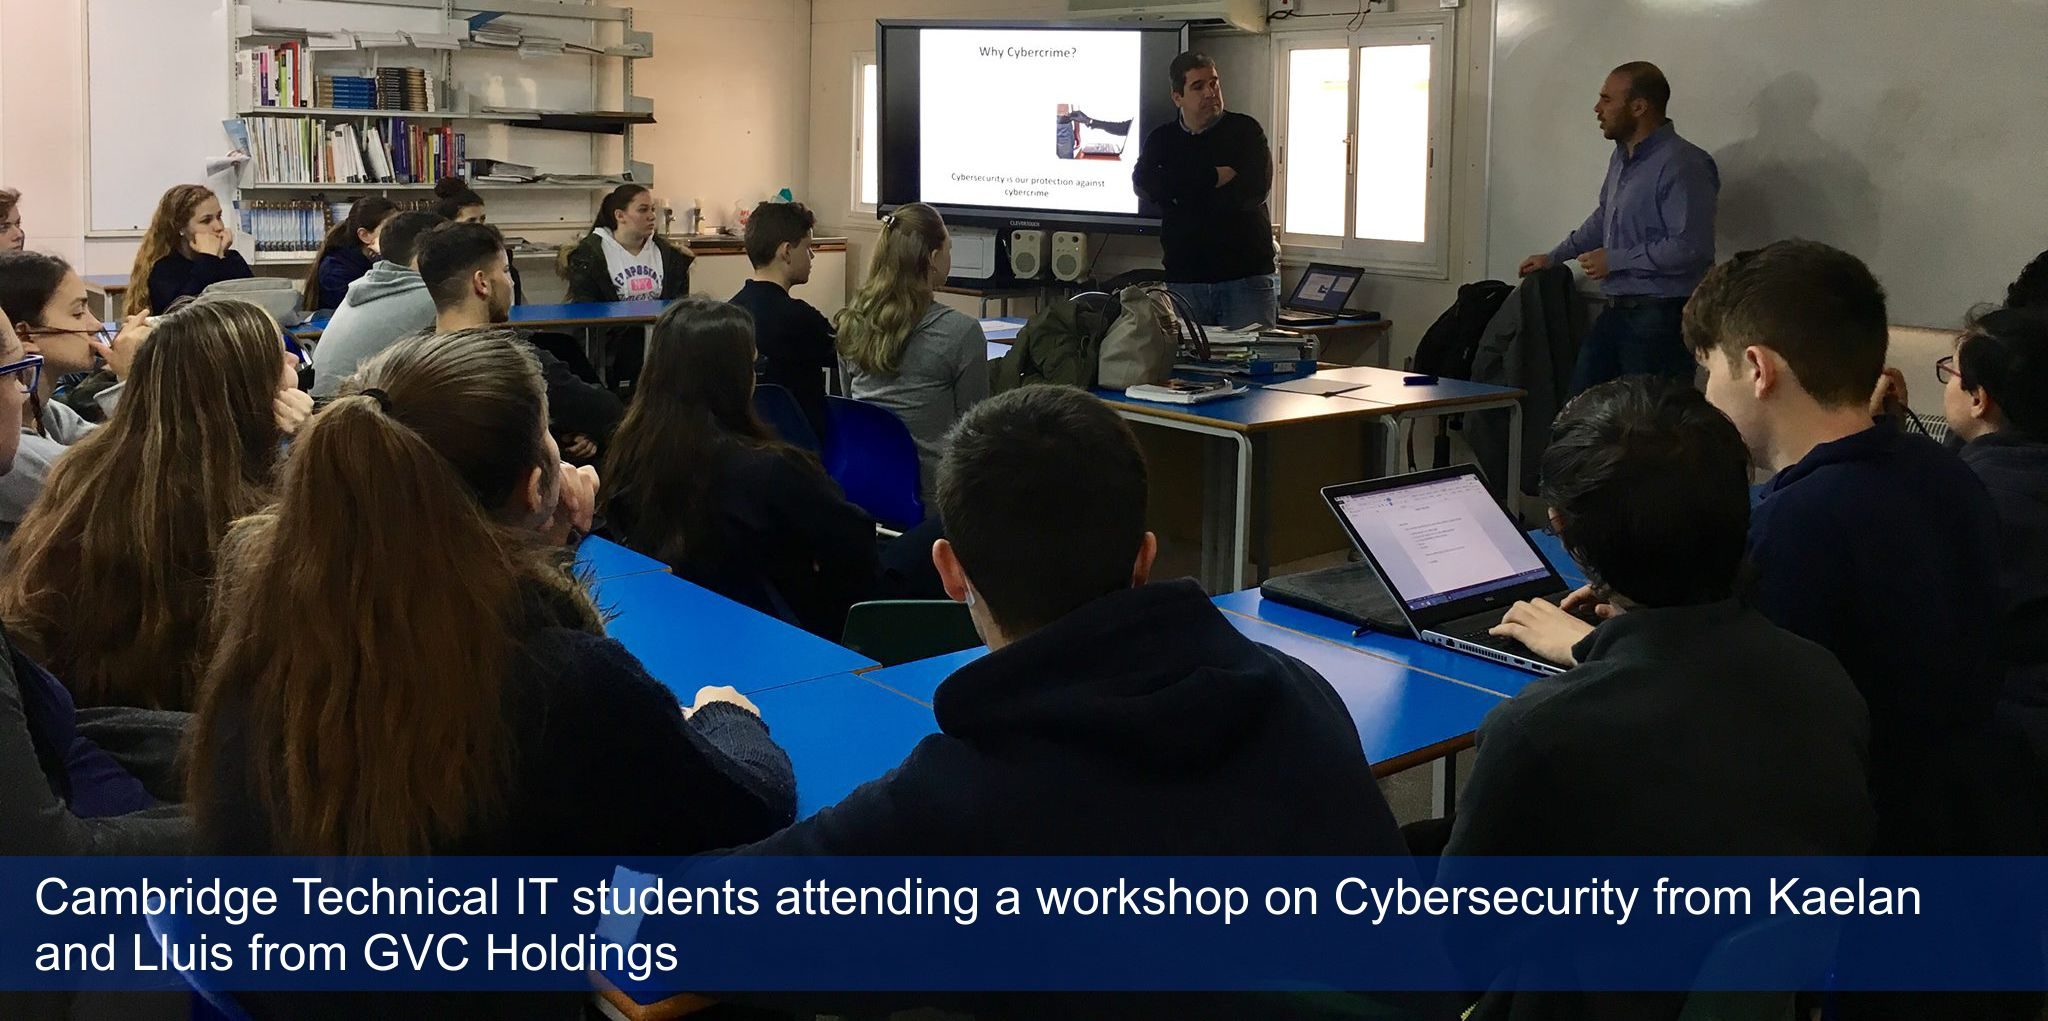 Cambridge Technical IT students attending a workshop on Cybersecurity from Kaelan and Lluis from GVC Holdings